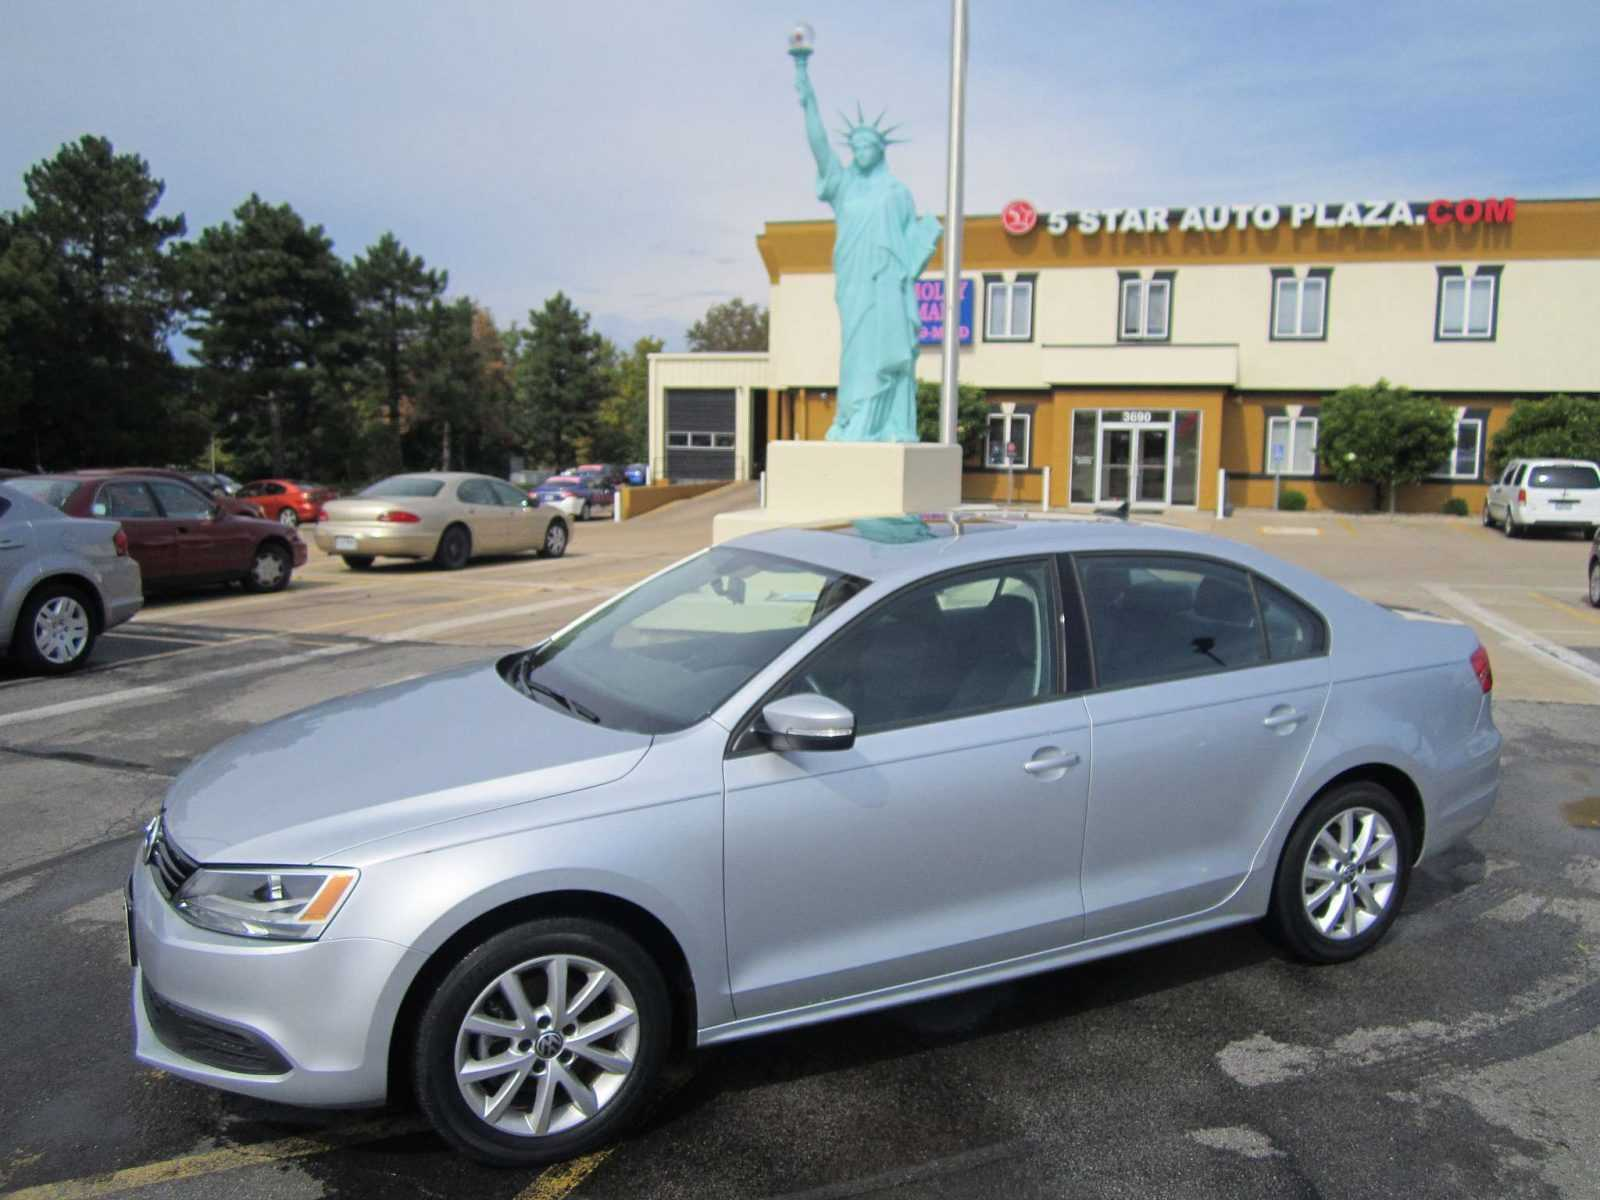 Pre-Owned Volkswagen Cars for Sale in St. Louis